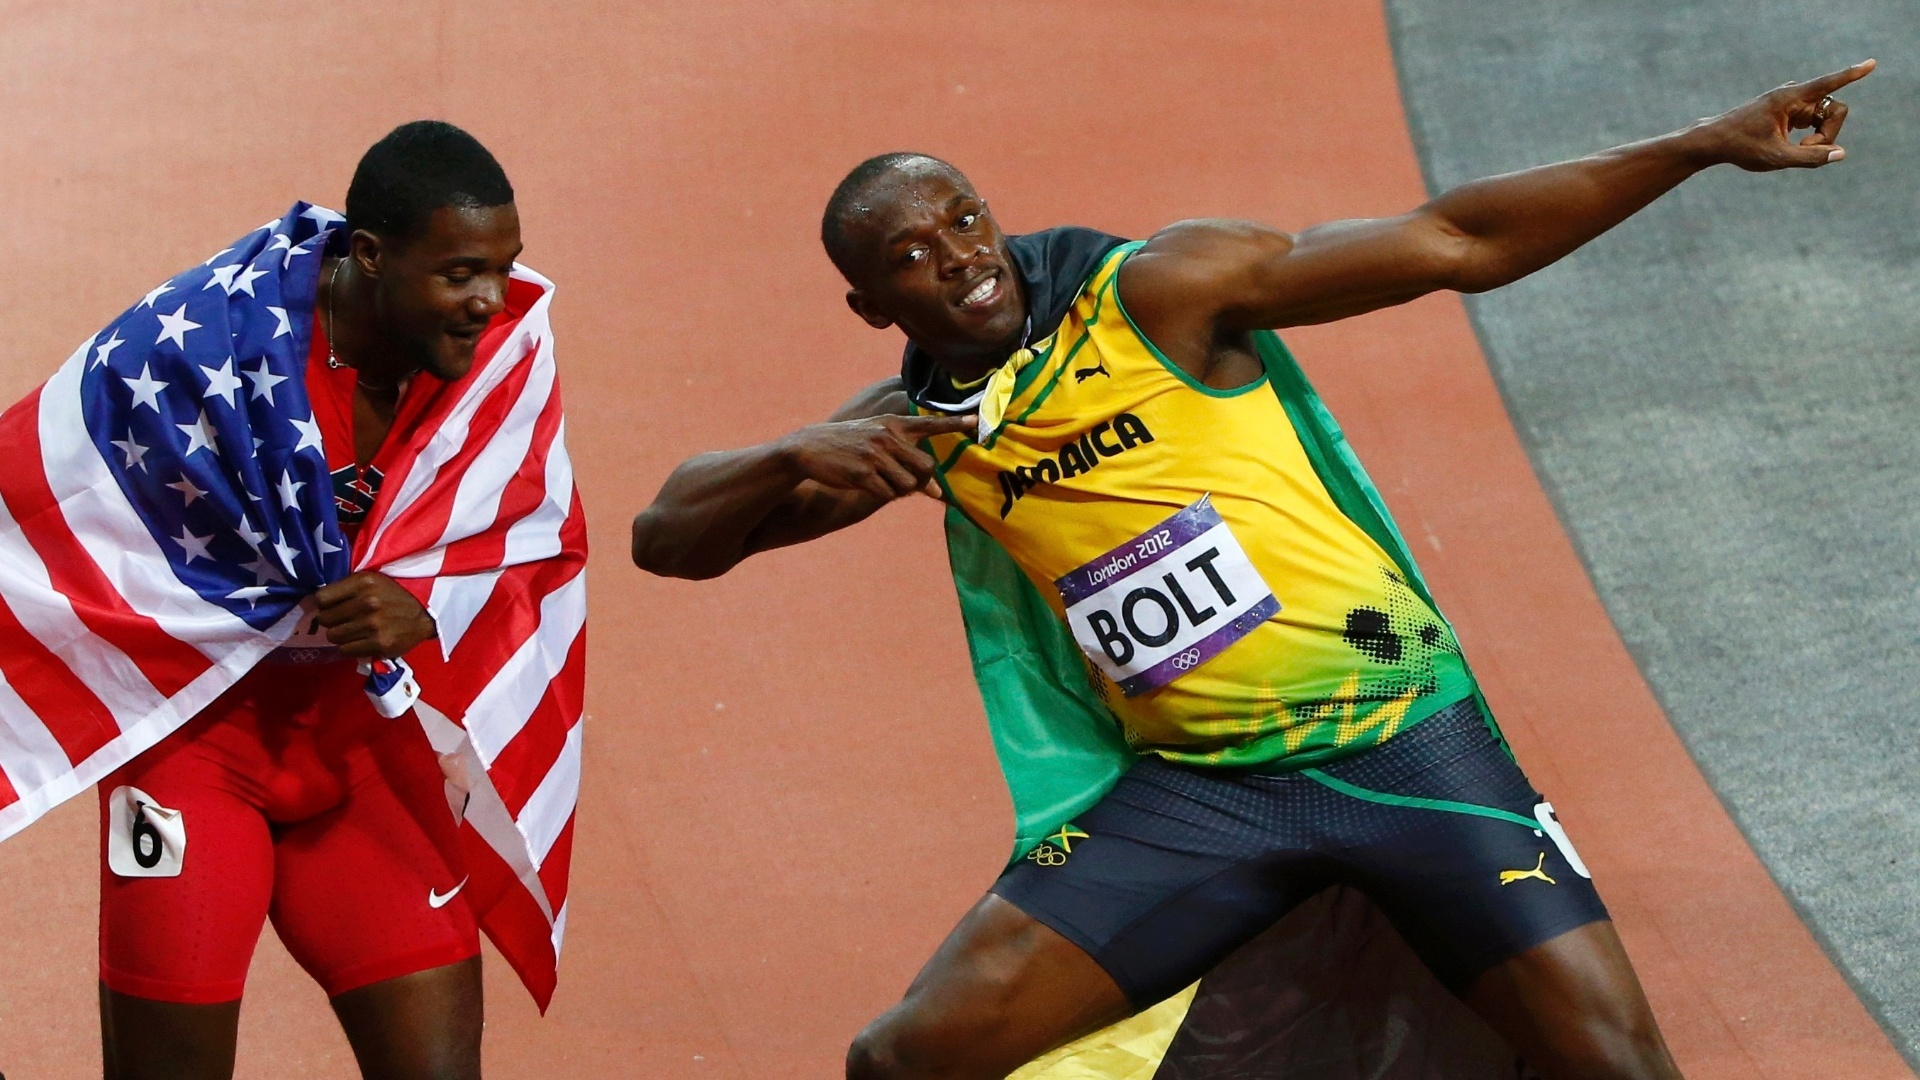 Sob olhar de Justin Gatlin, Usain Bolt faz gesto da vitria aps conquistar a medalha de ouro nos 100 m rasos